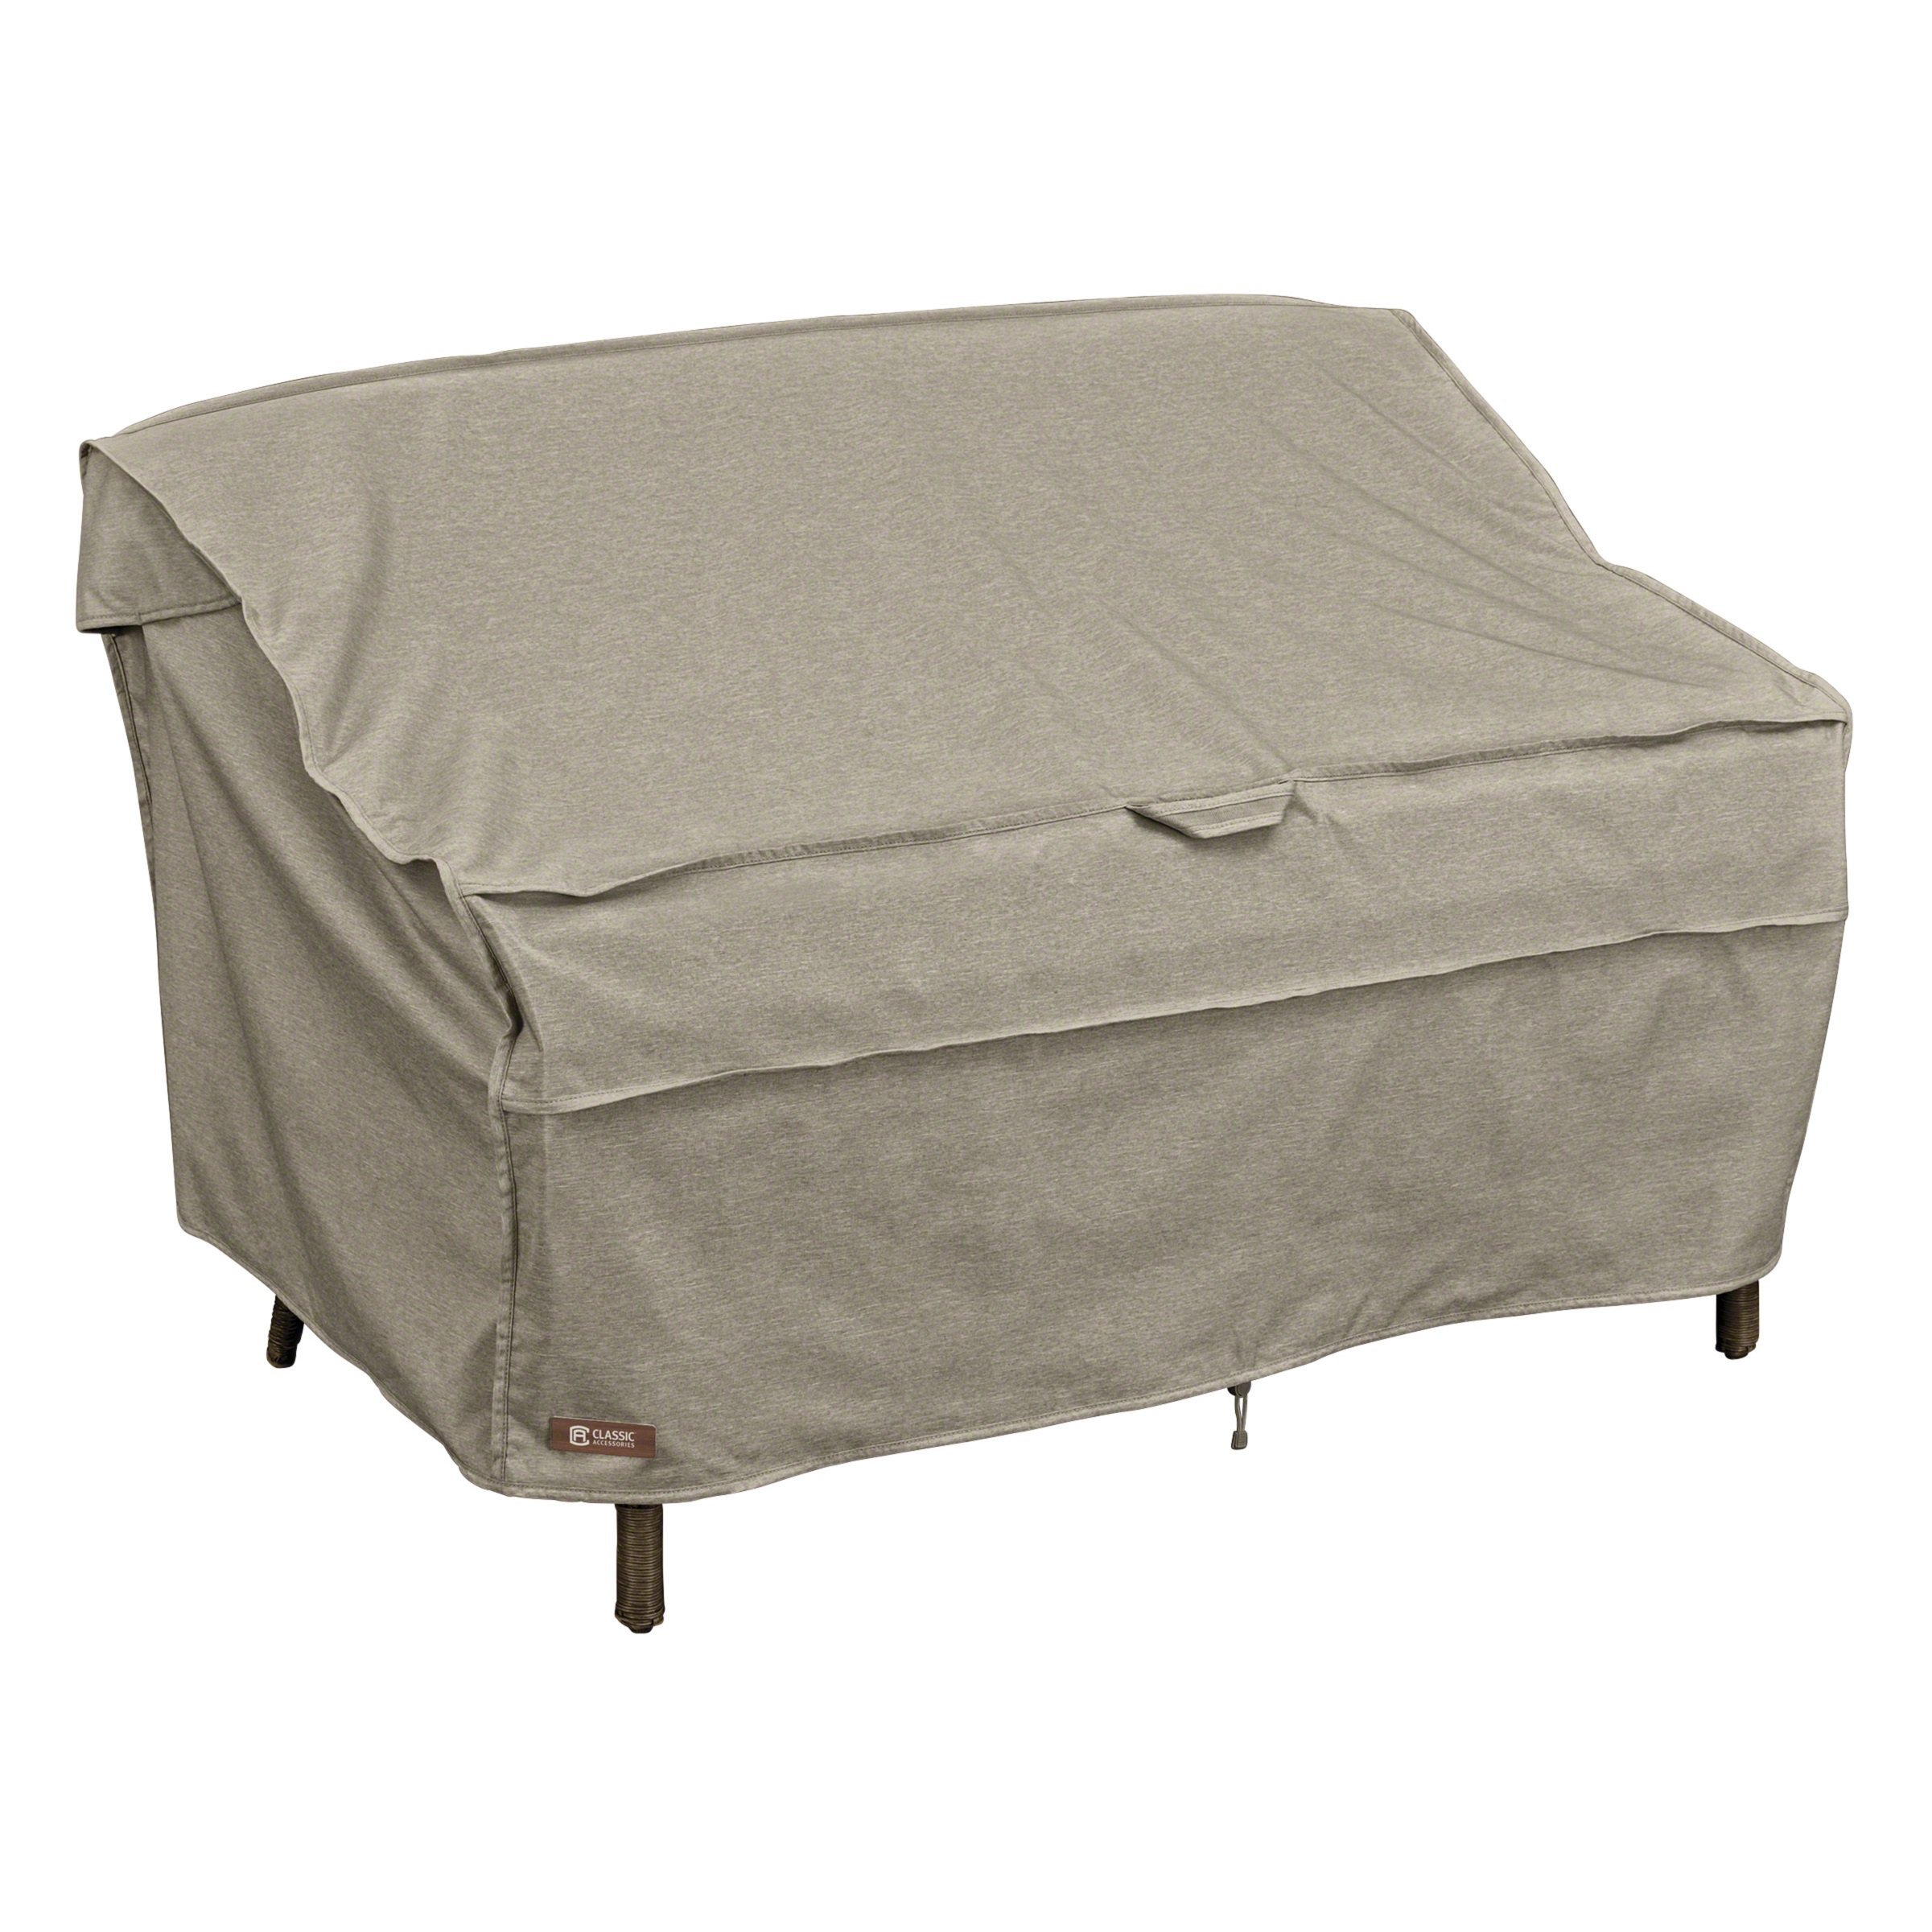 Classic Accessories Montlake Water-Resistant 58 Inch Patio Bench/Loveseat/Sofa Cover